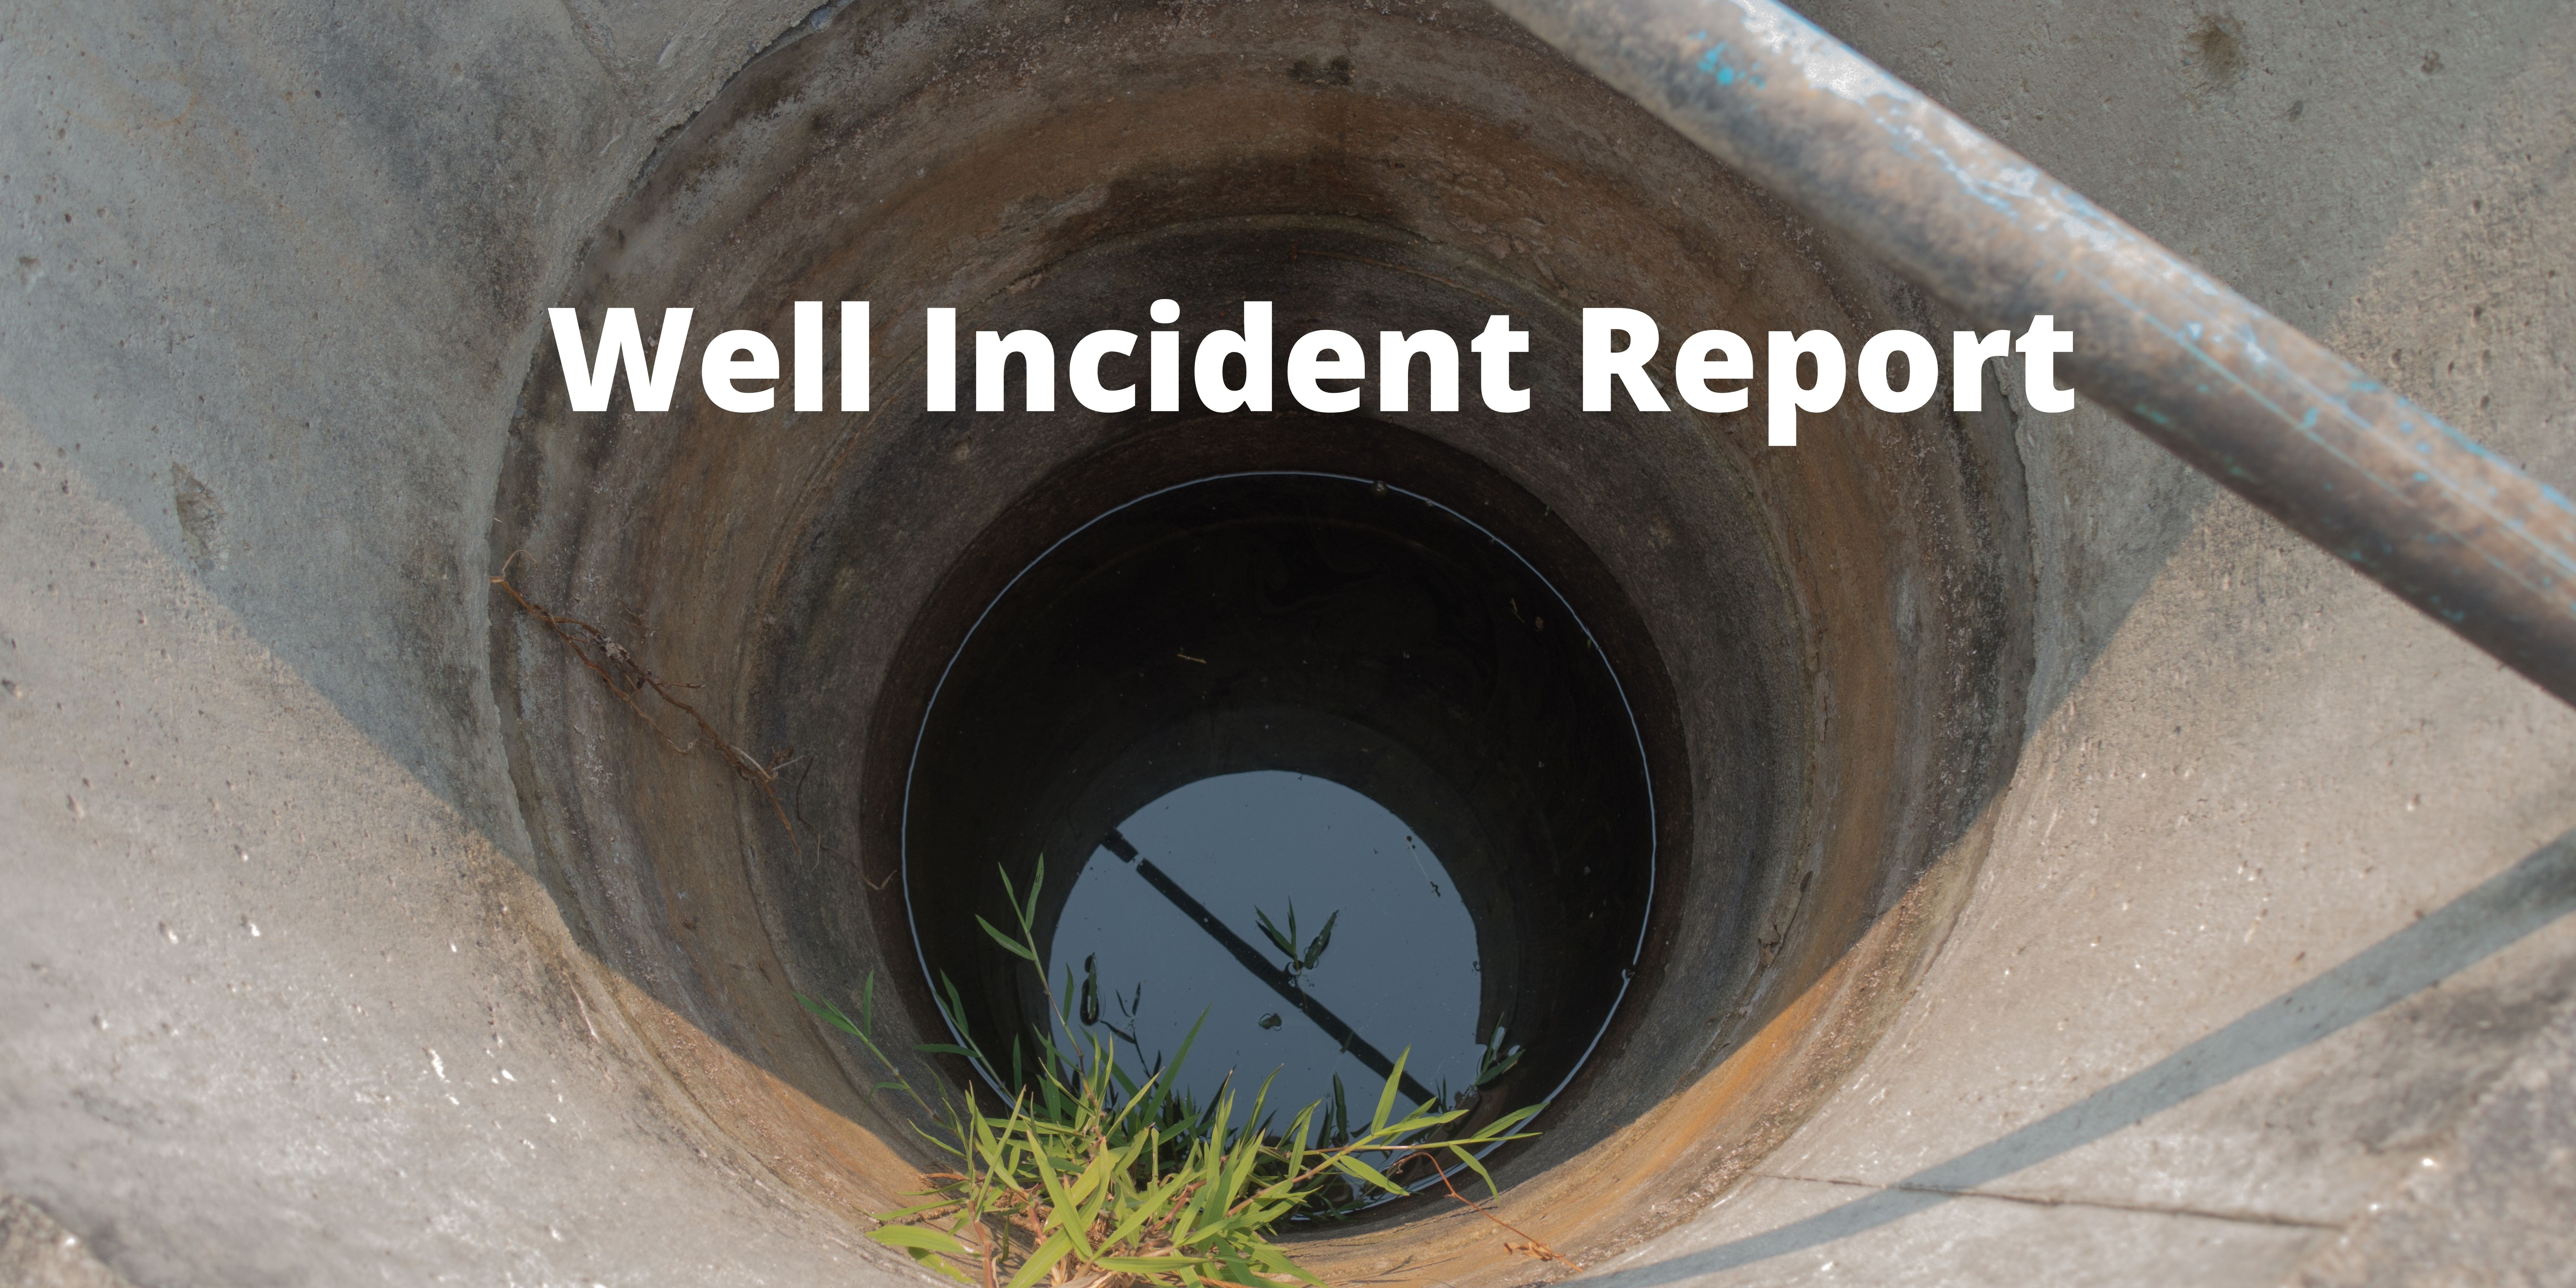 well incident report